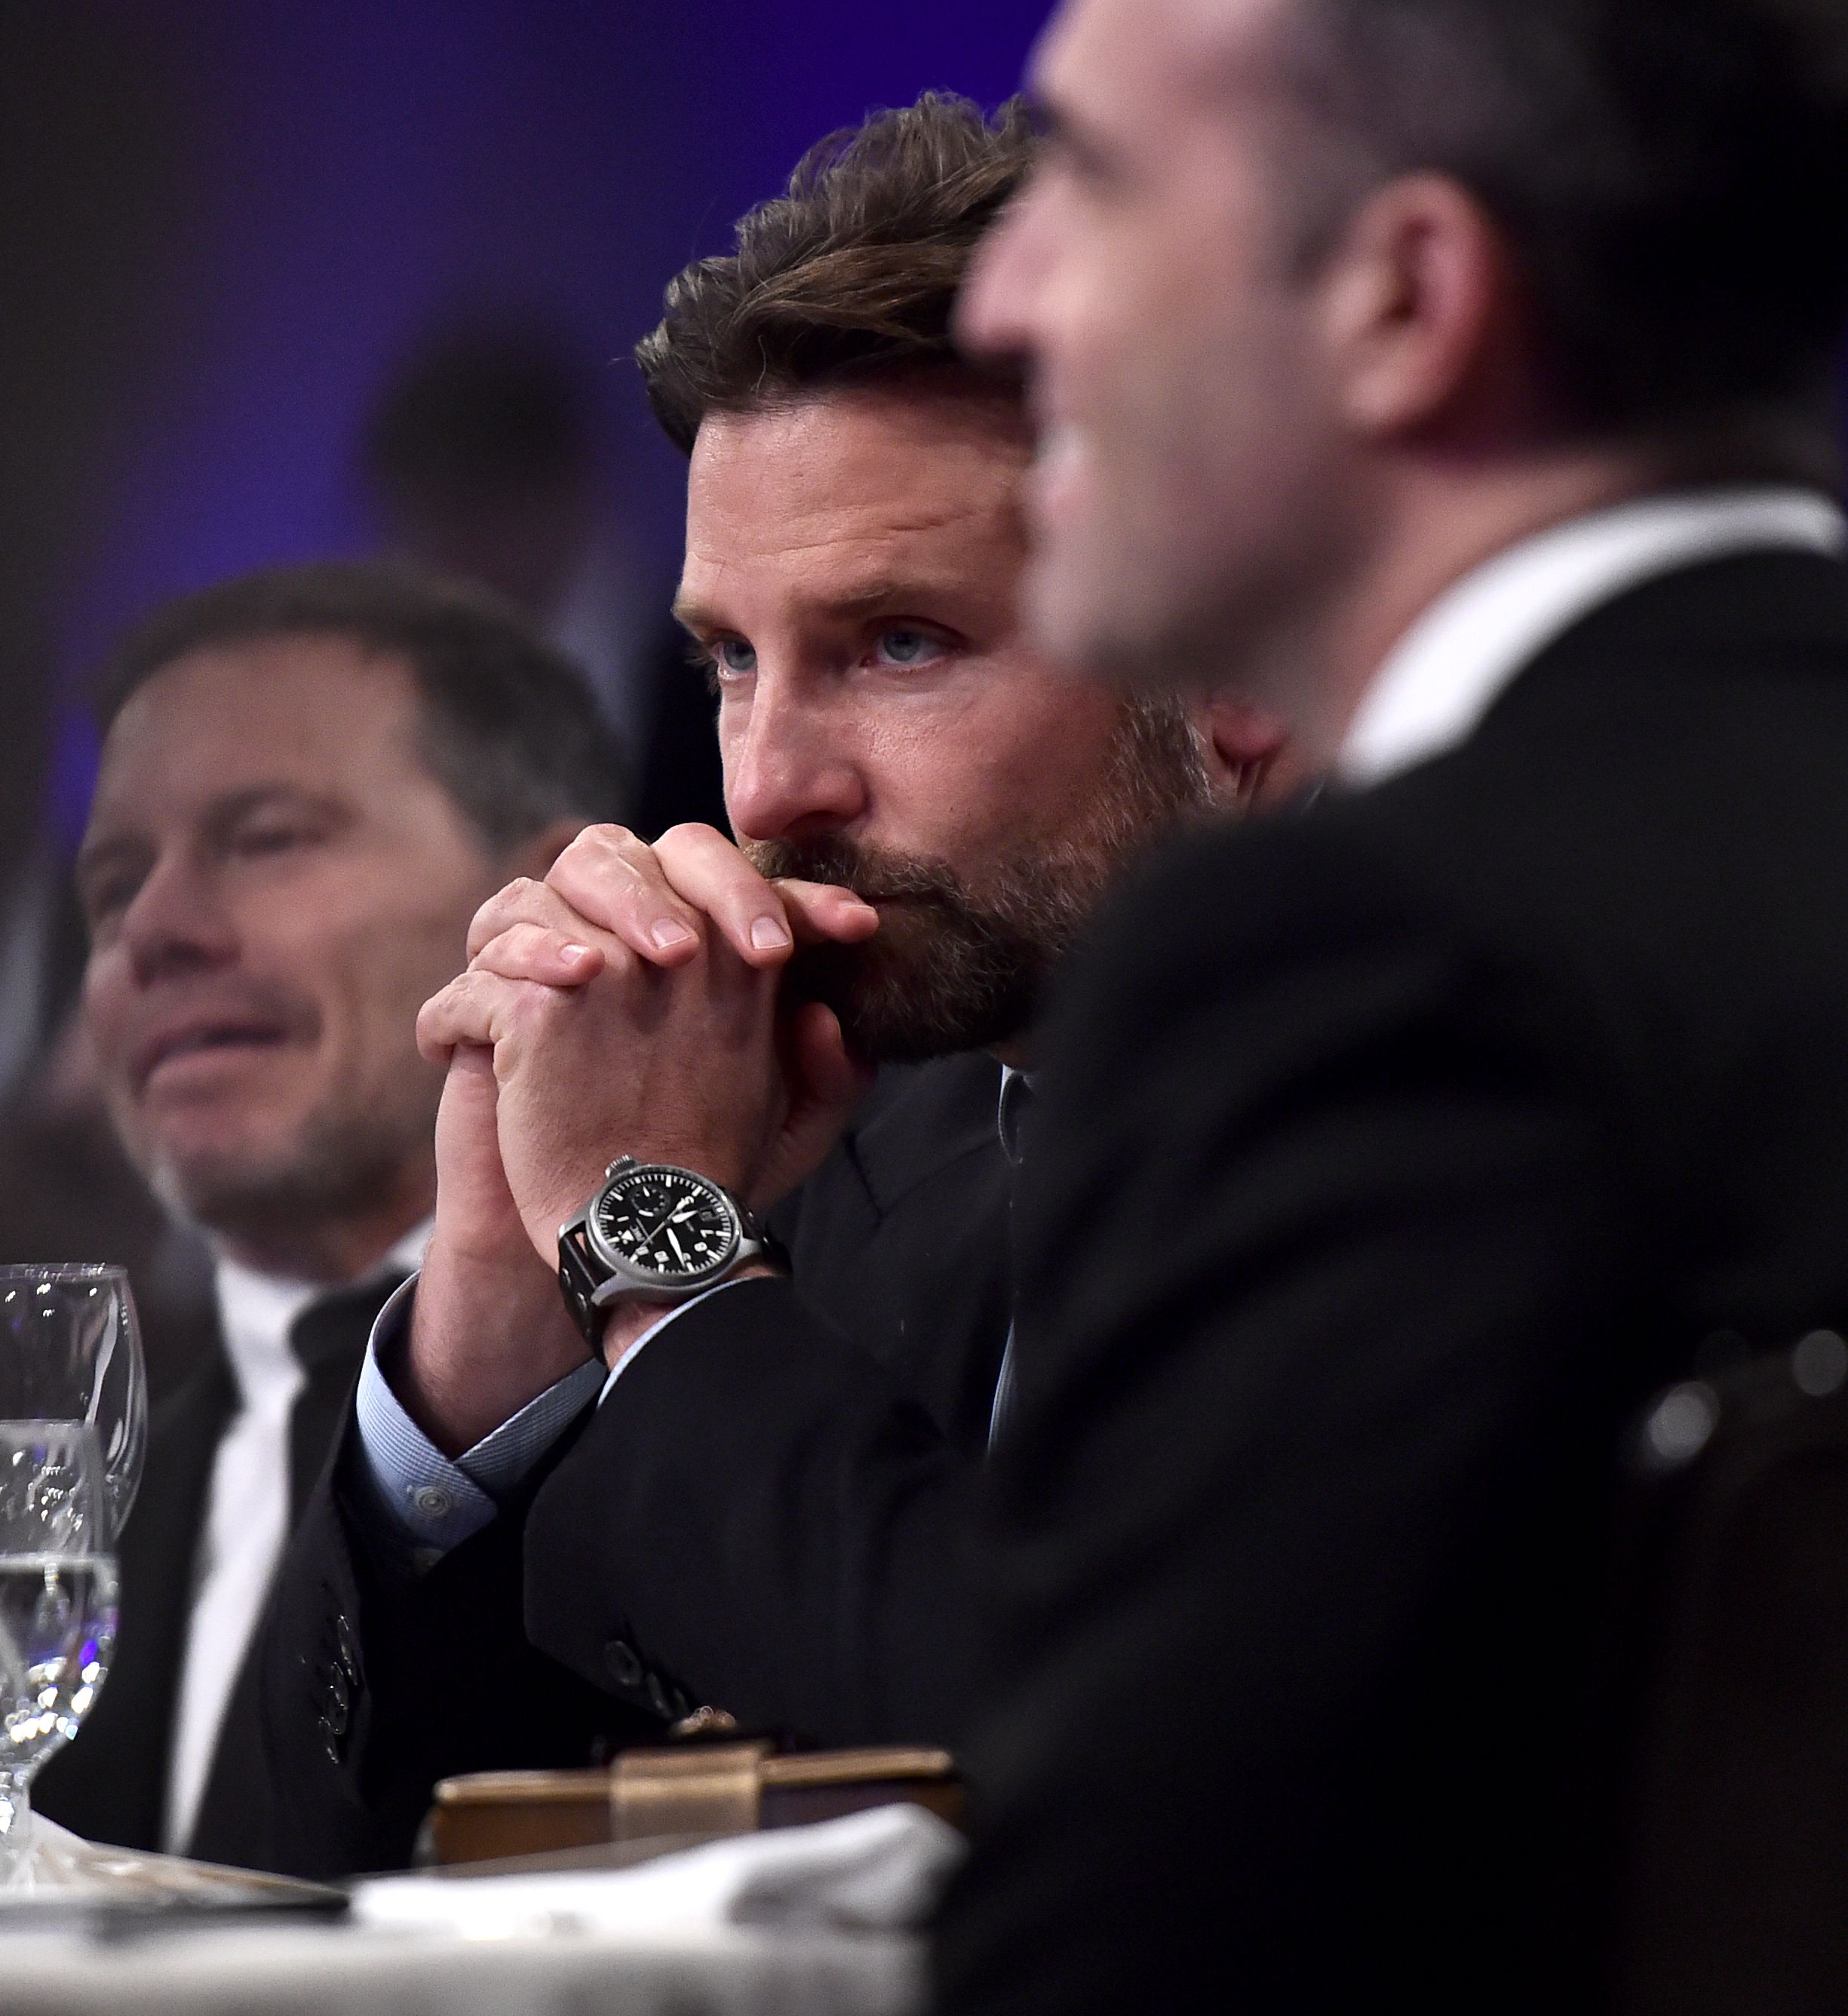 Bradley Cooper2019 Writers Guild Awards, Show, The Beverly Hilton, Los Angeles, USA - 17 Feb 2019